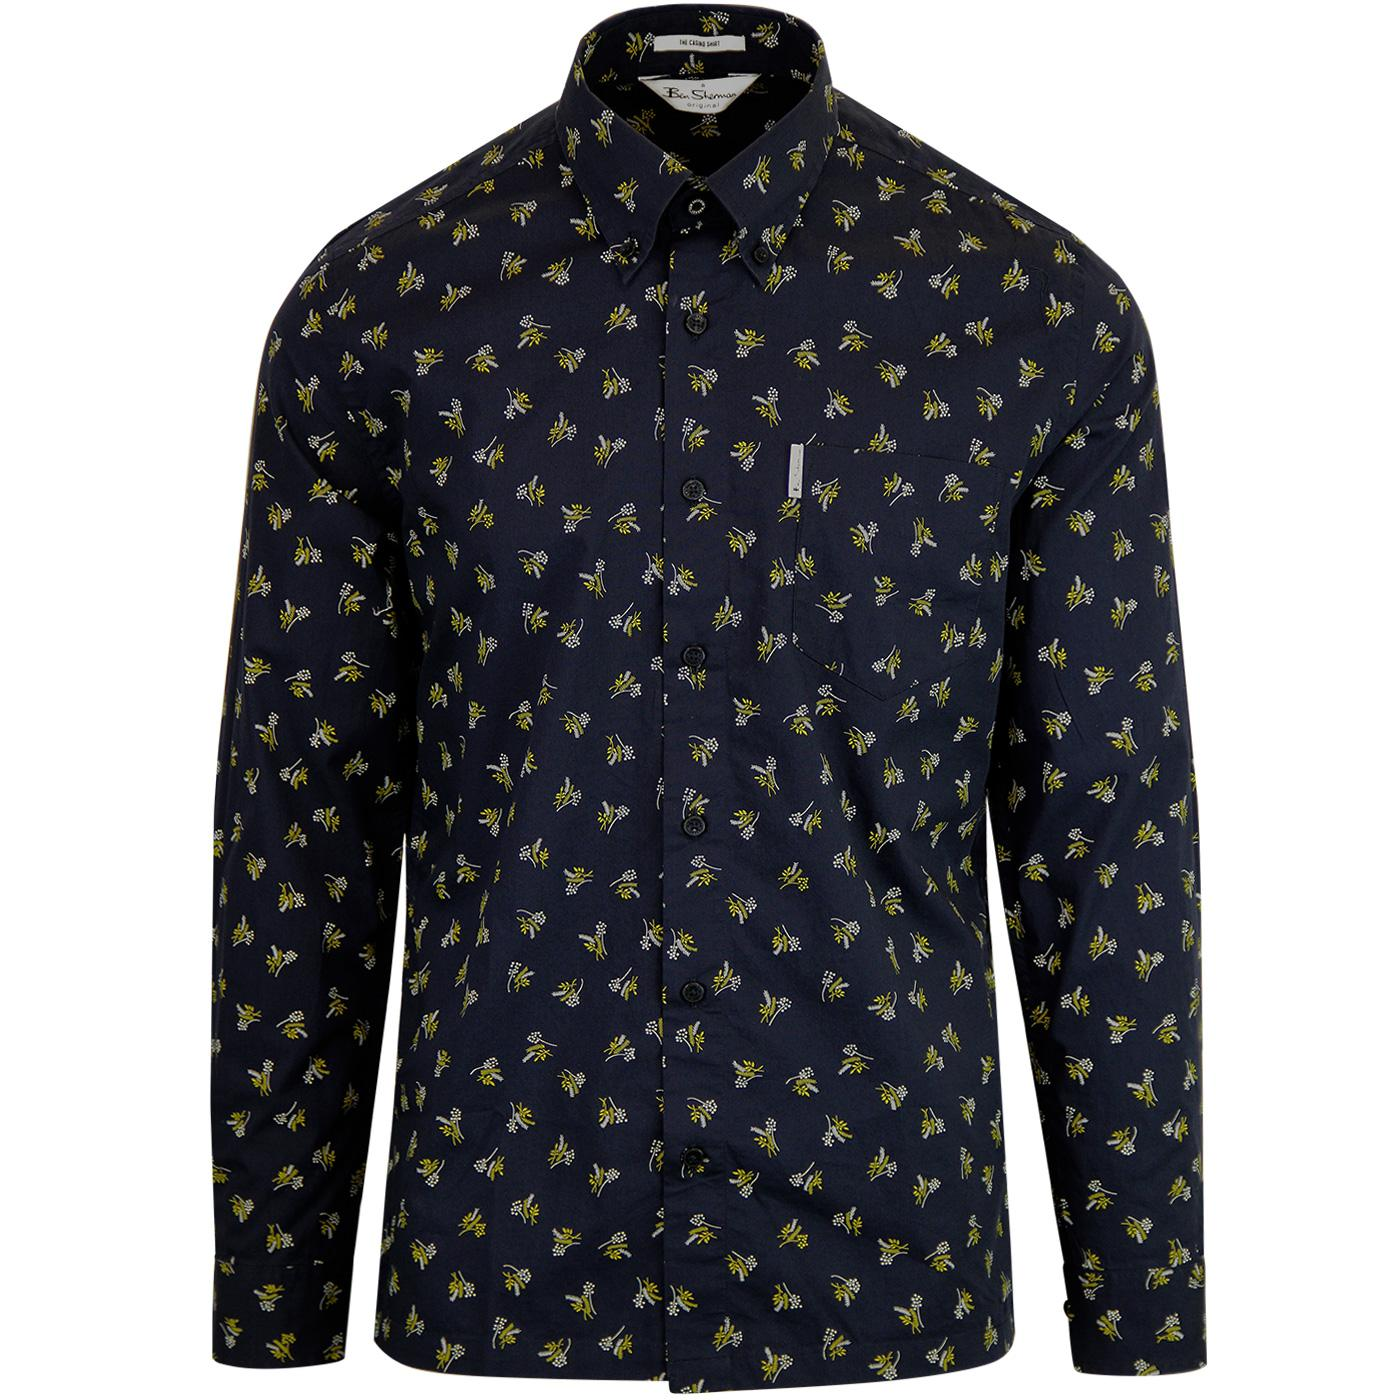 Casino BEN SHERMAN 1970's Archive Print Shirt (N)